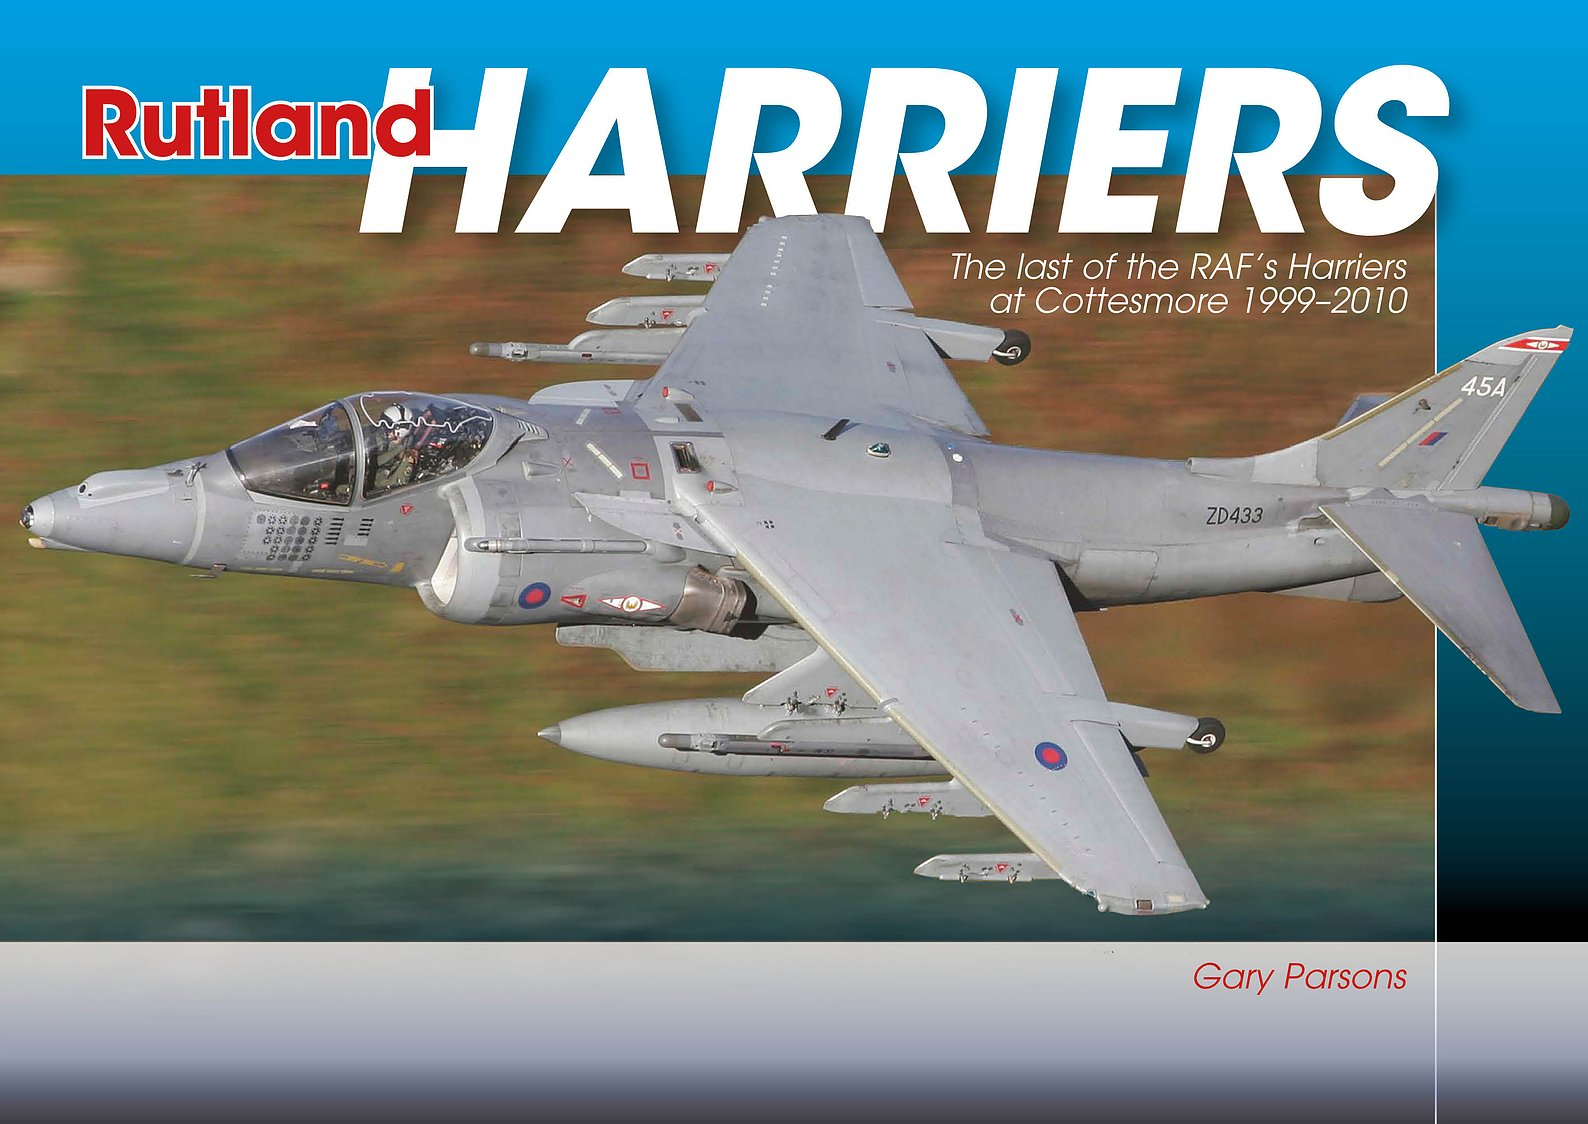 Rutland Harriers